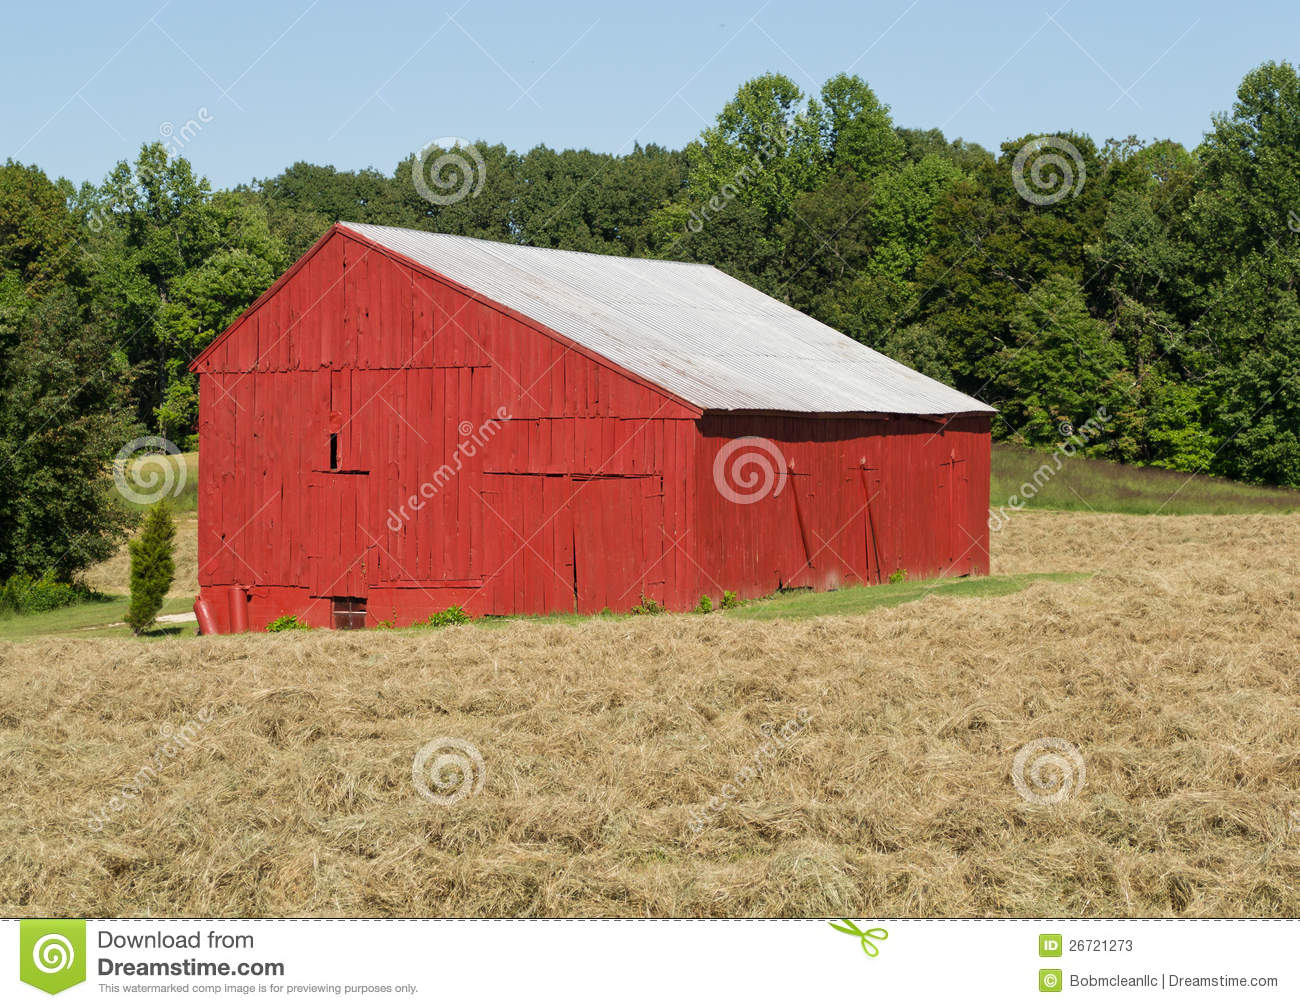 Tobacco drying barn stock photos image 26721273 for Tobacco barn house plans